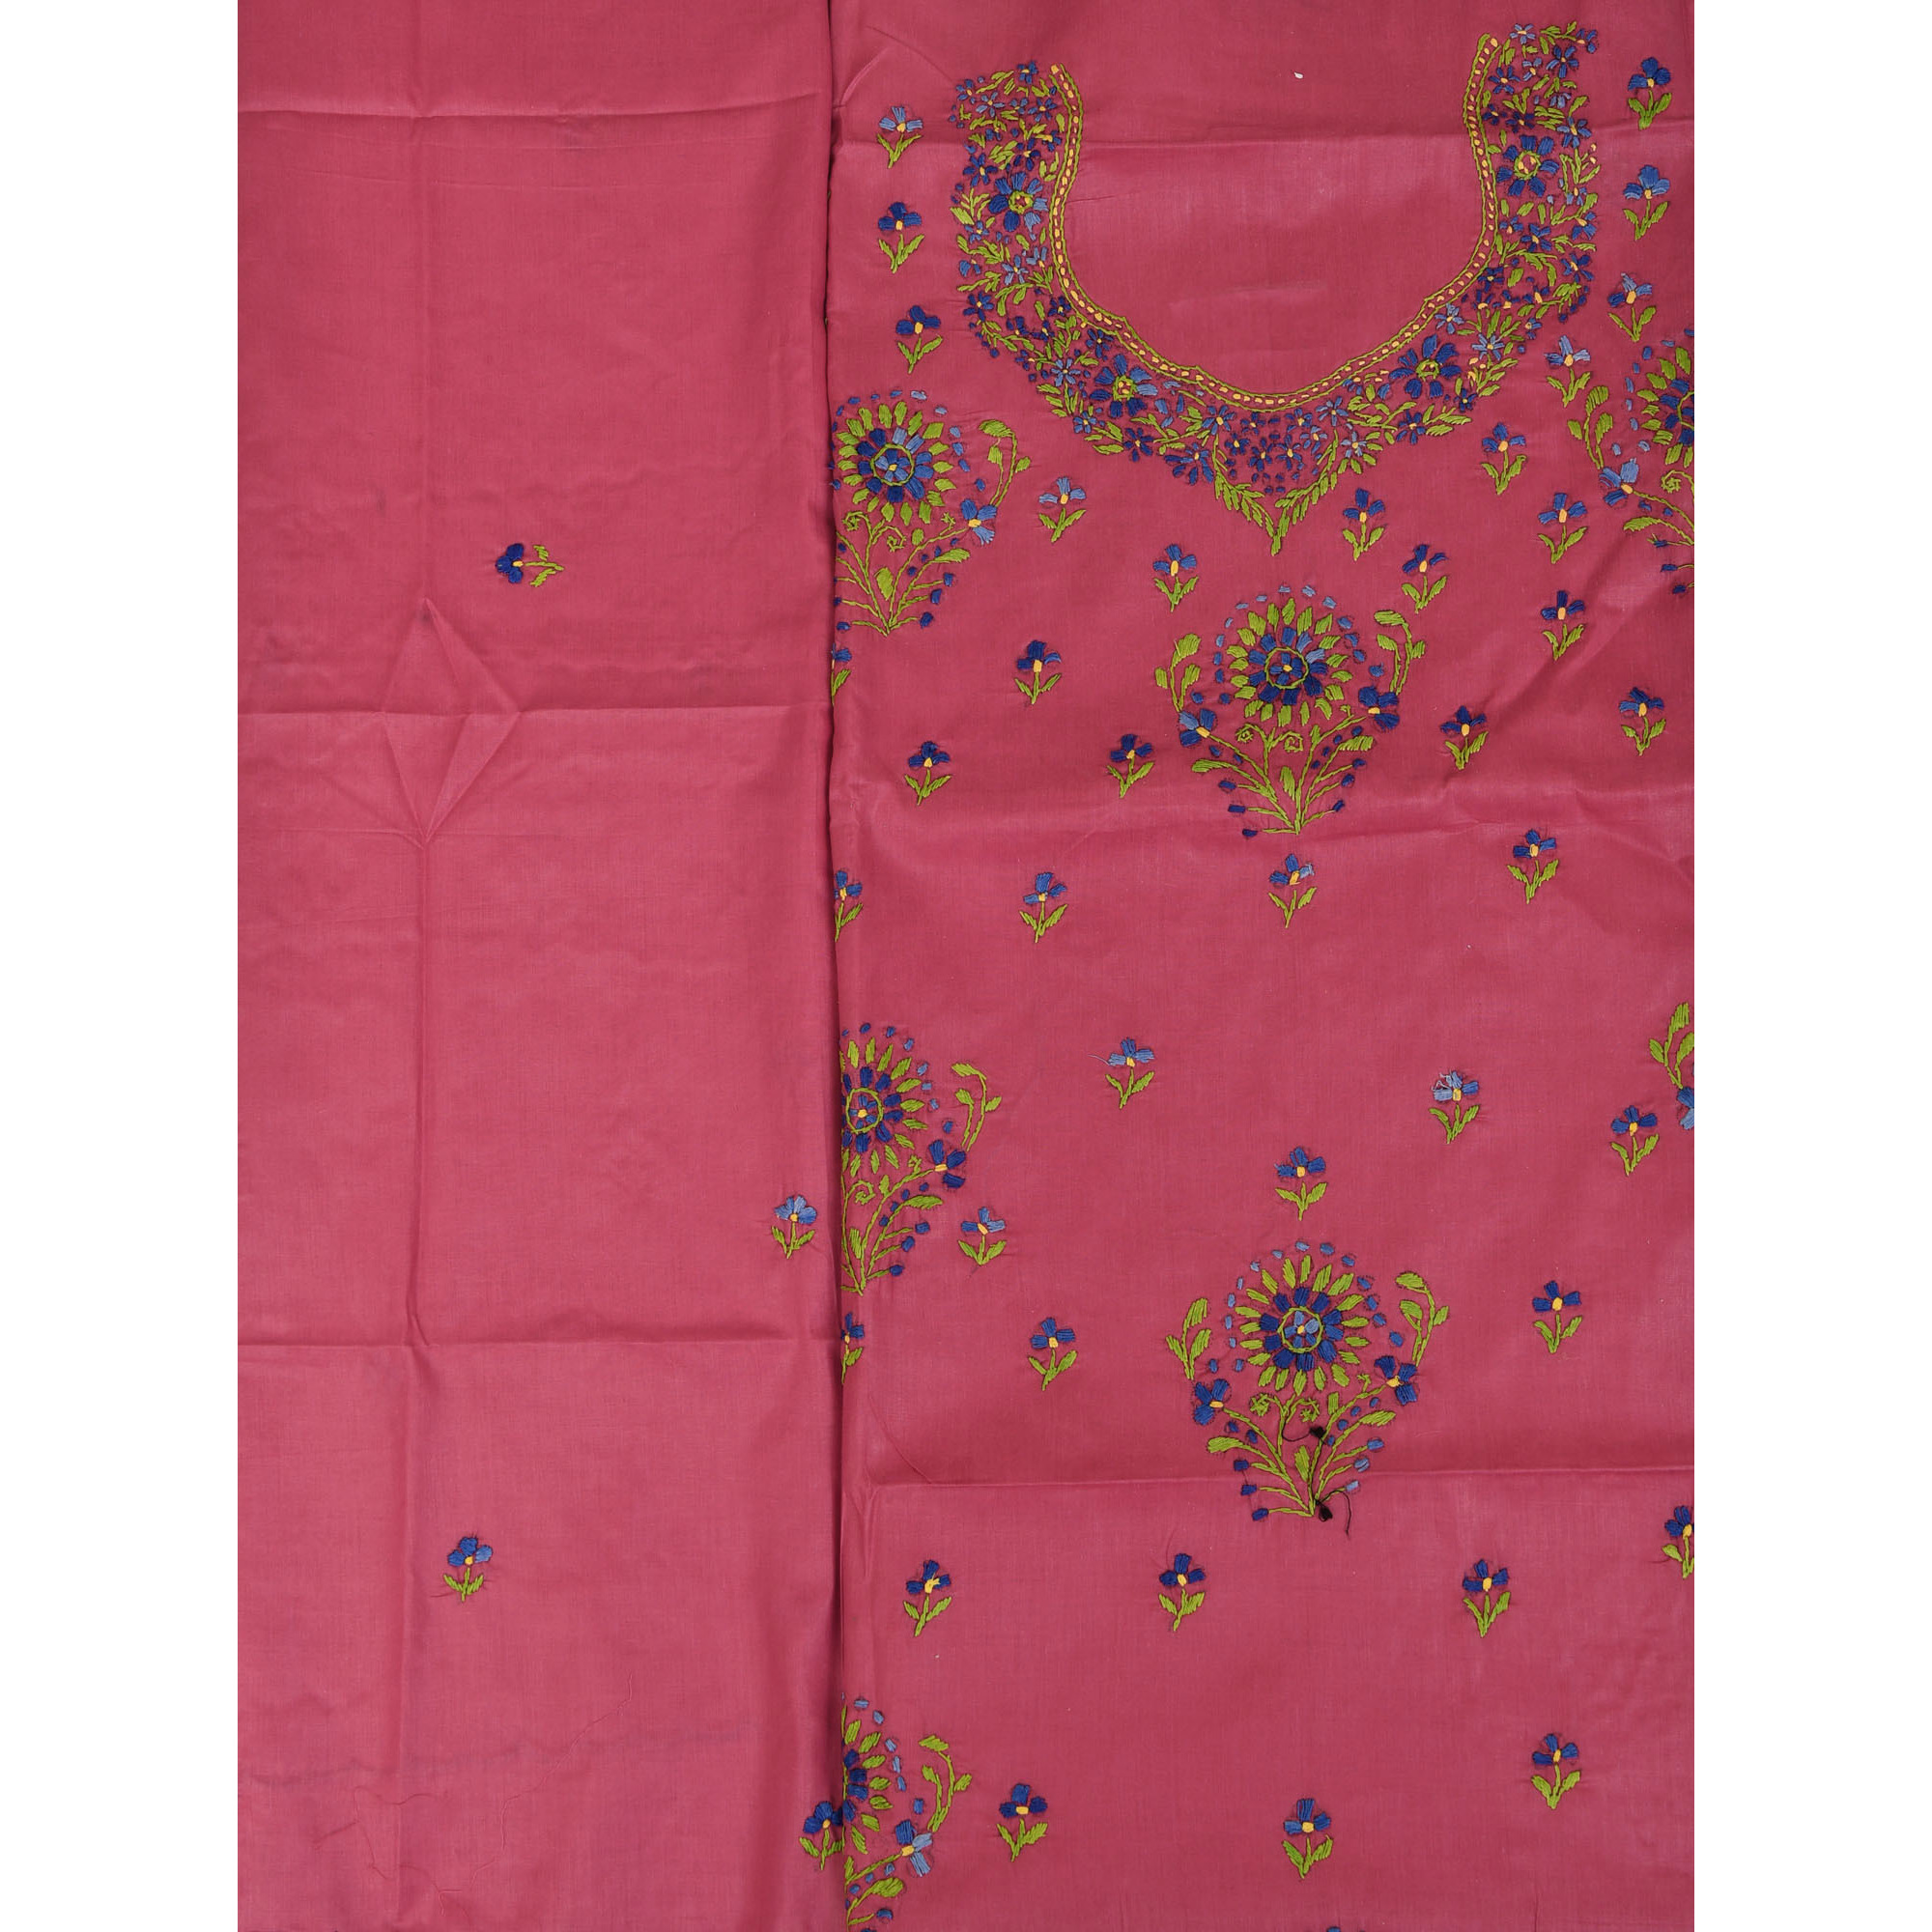 Rose-Wine Floral-Embroidered Salwar Kameez Fabric from Kolkata